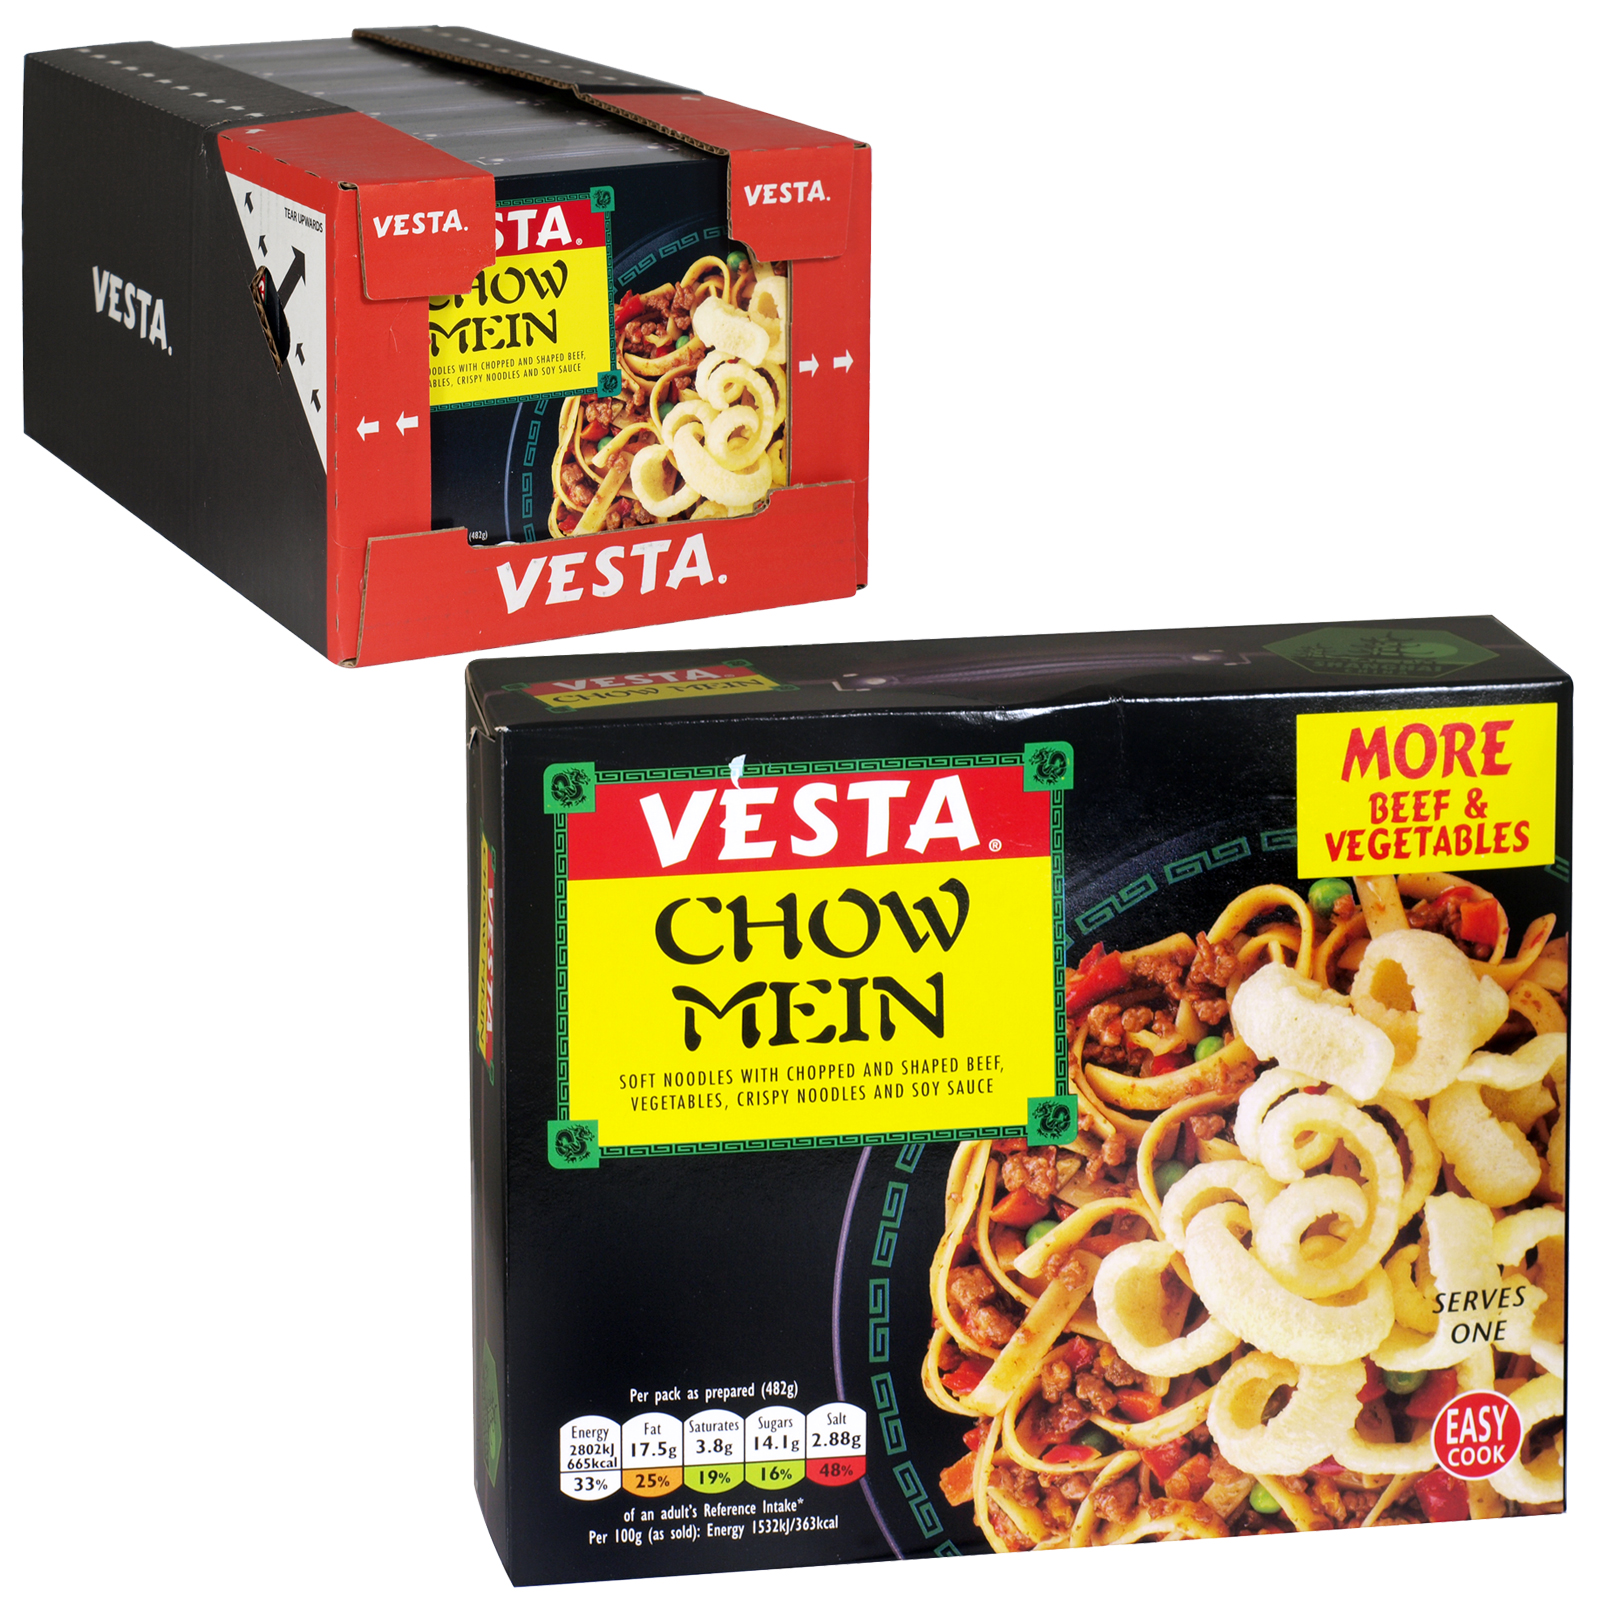 VESTA CHOW MEIN NEW LARGE SIZE 152GM X 6